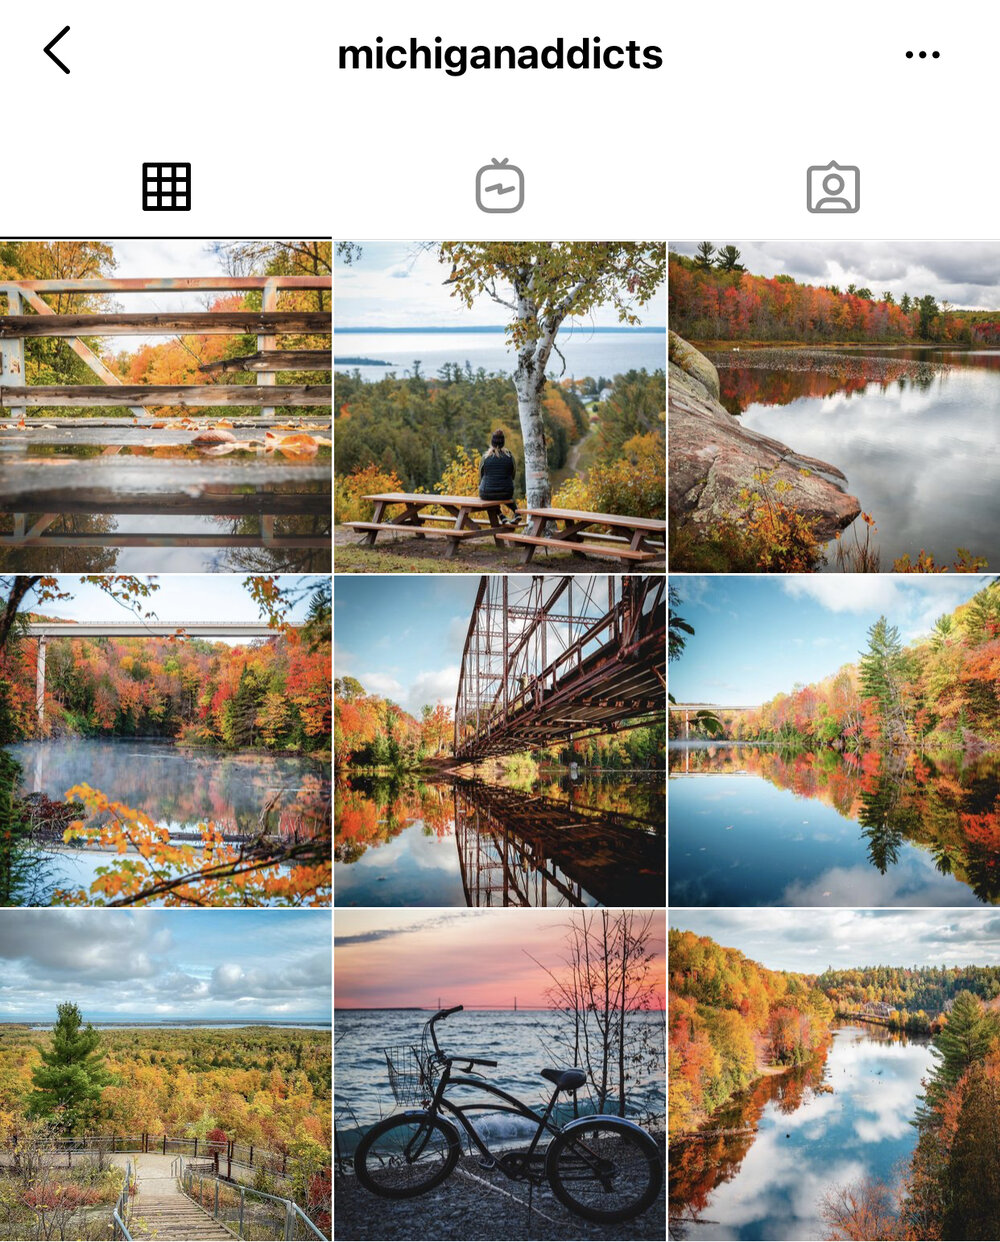 Michigan Addicts:     We tend to re-share a lot of their pictures because they are just SO good. We had the pleasure of meeting Joey and Jessica this season on Mackinac and they are such a great couple! It's fun to meet the people we follow on Instagram - give them a follow for some great Michigan shots!